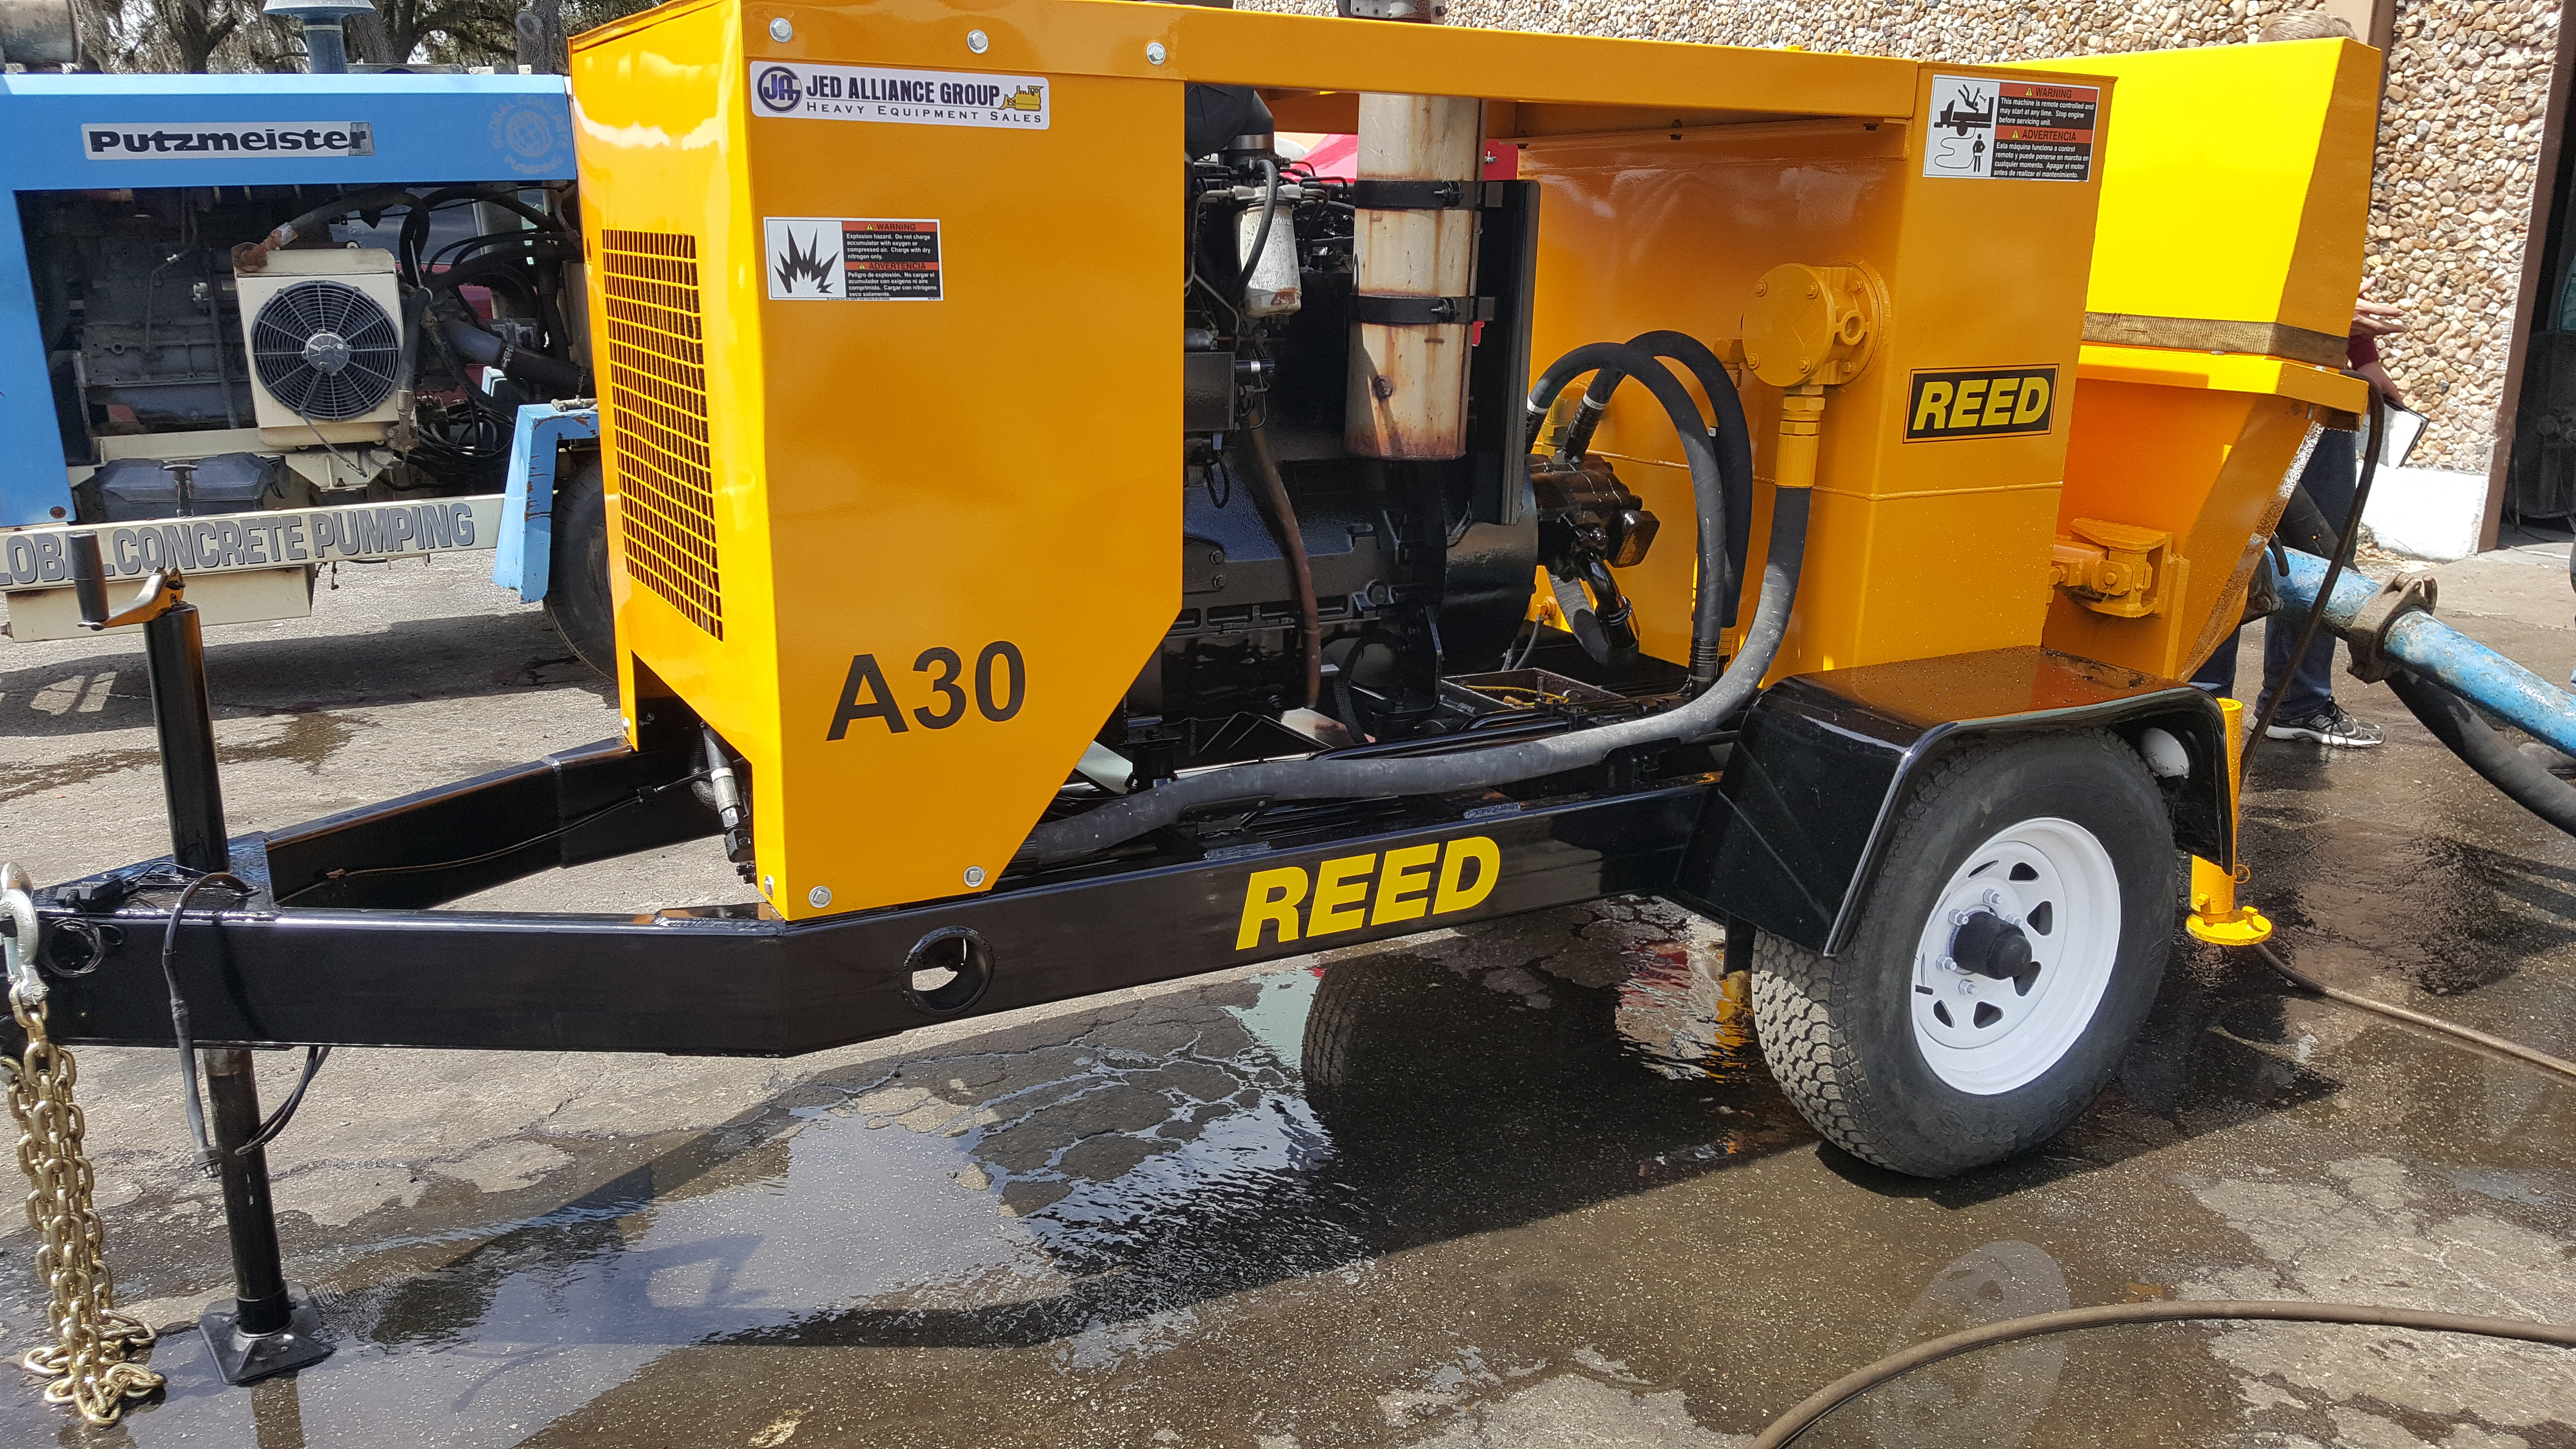 Reed concrete pump for sale | 2002 REED A30 #1819 fully restored pump